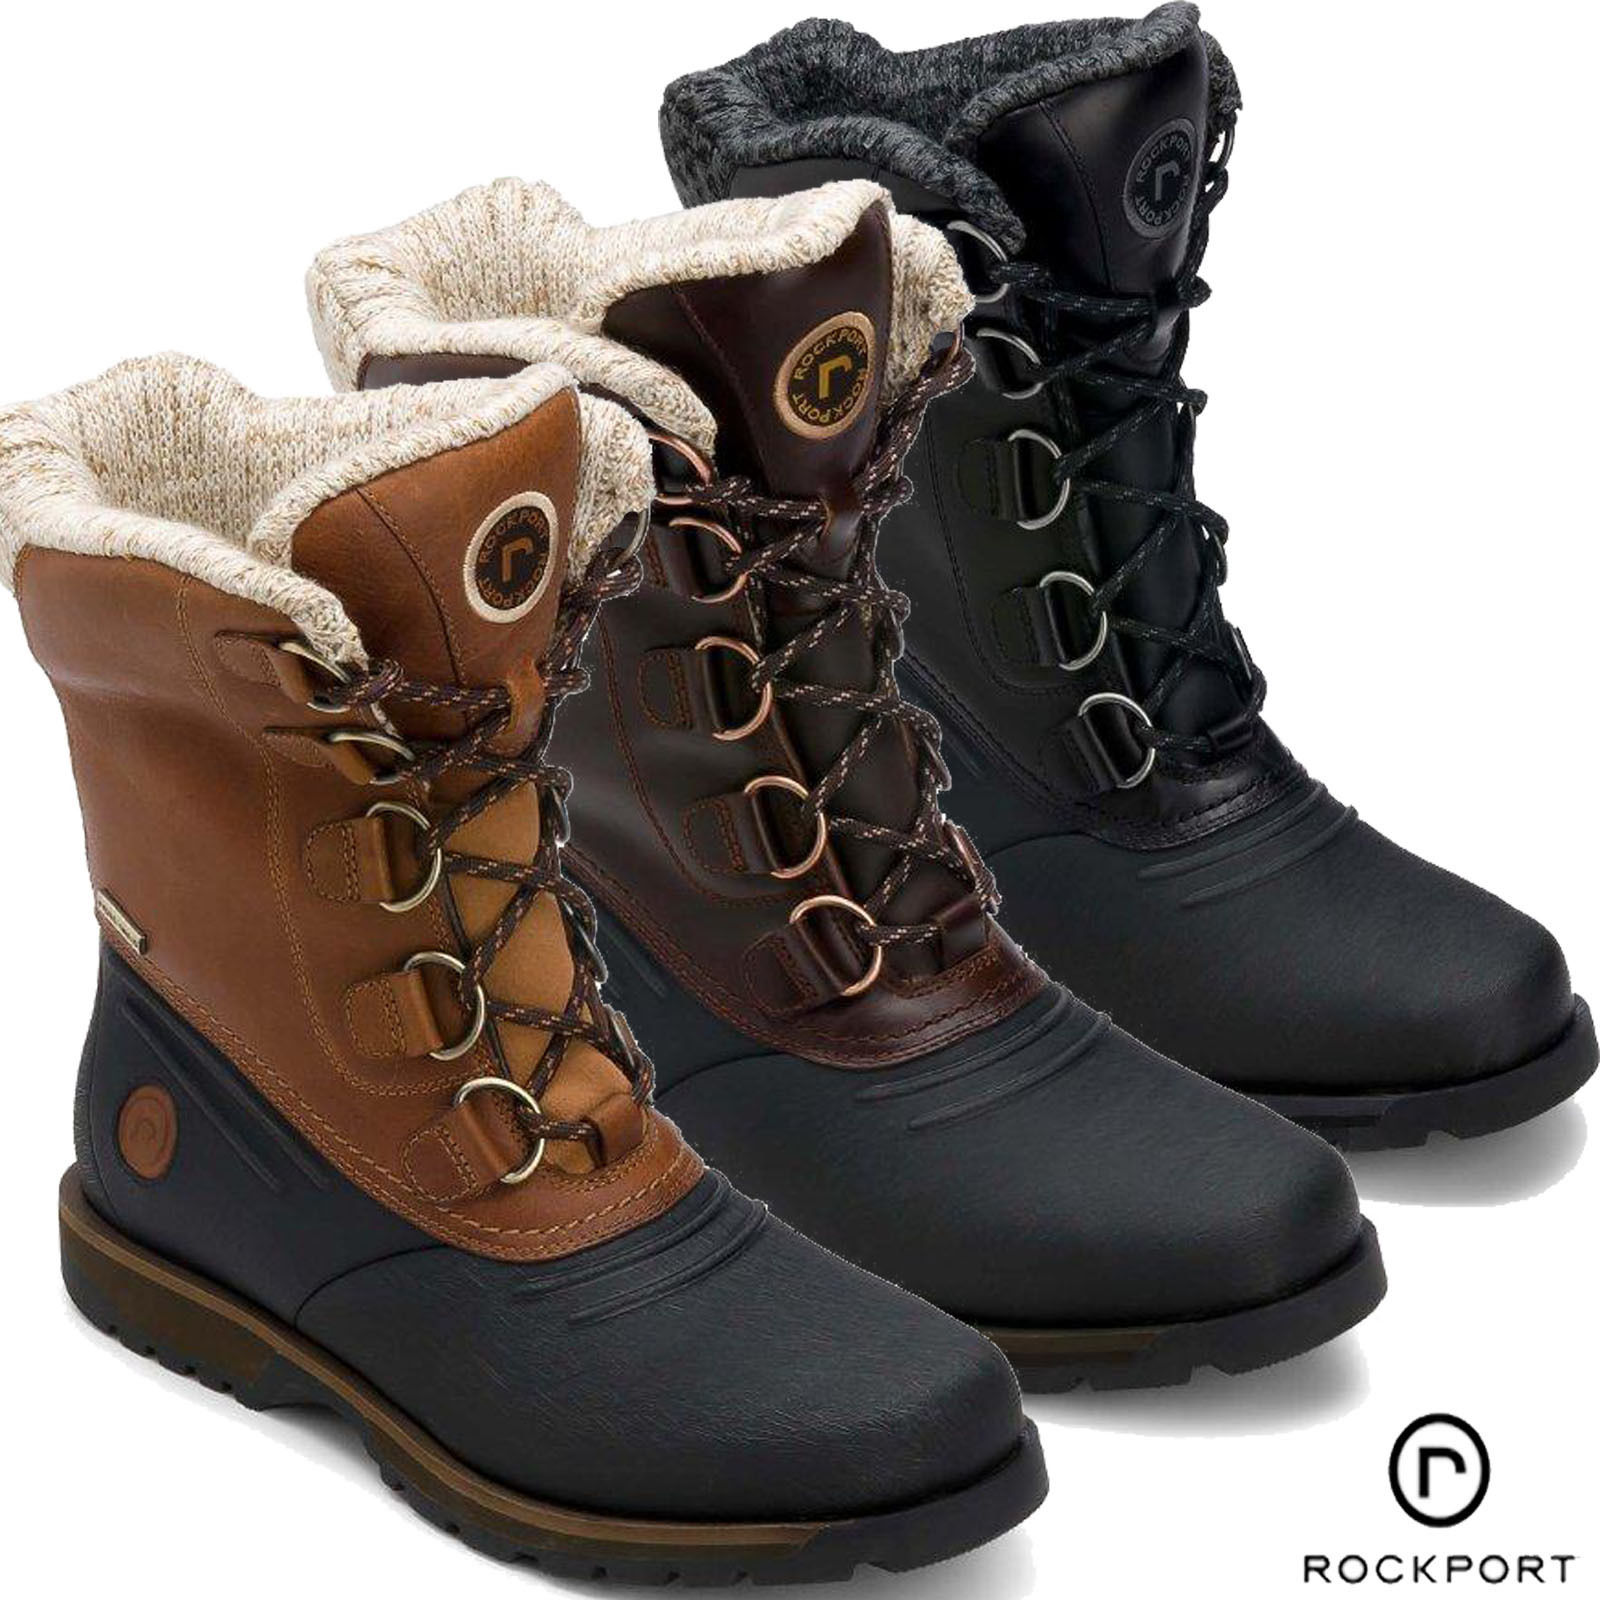 8cdfde464a7 How to Stylishly Wear Mens Winter Boots – careyfashion.com